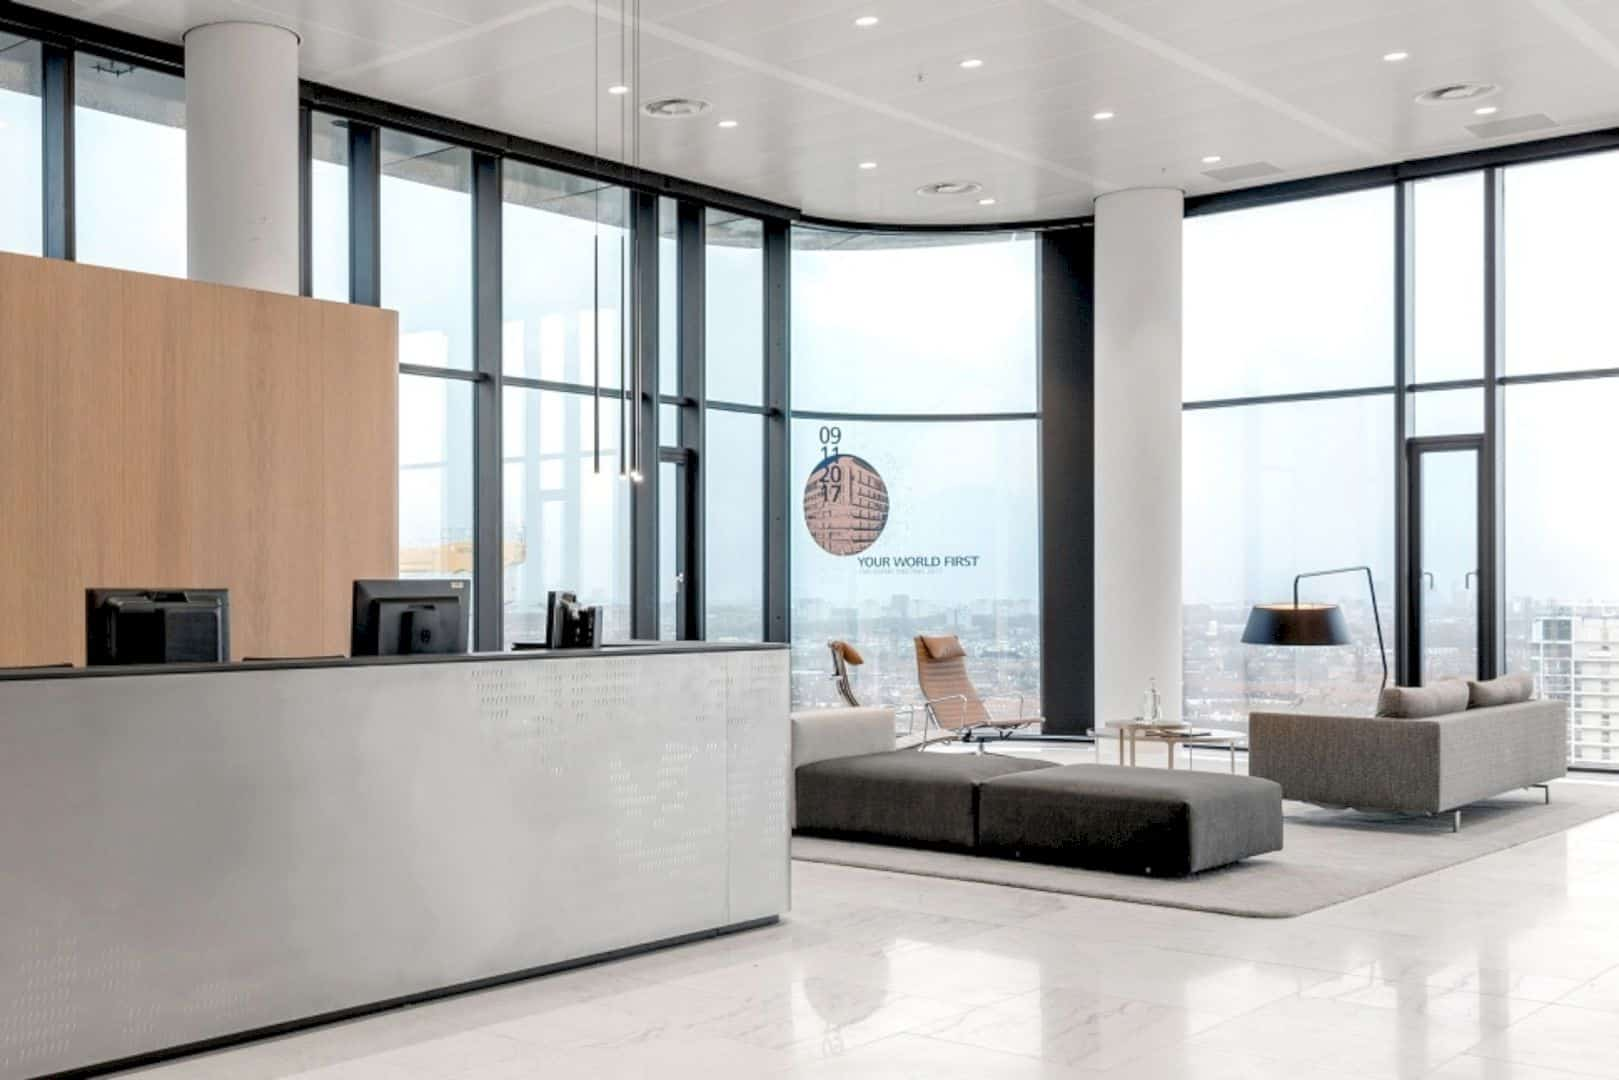 Cms Amsterdam A Warm Natural Base Office Design Merged With Curves And Transparency 16